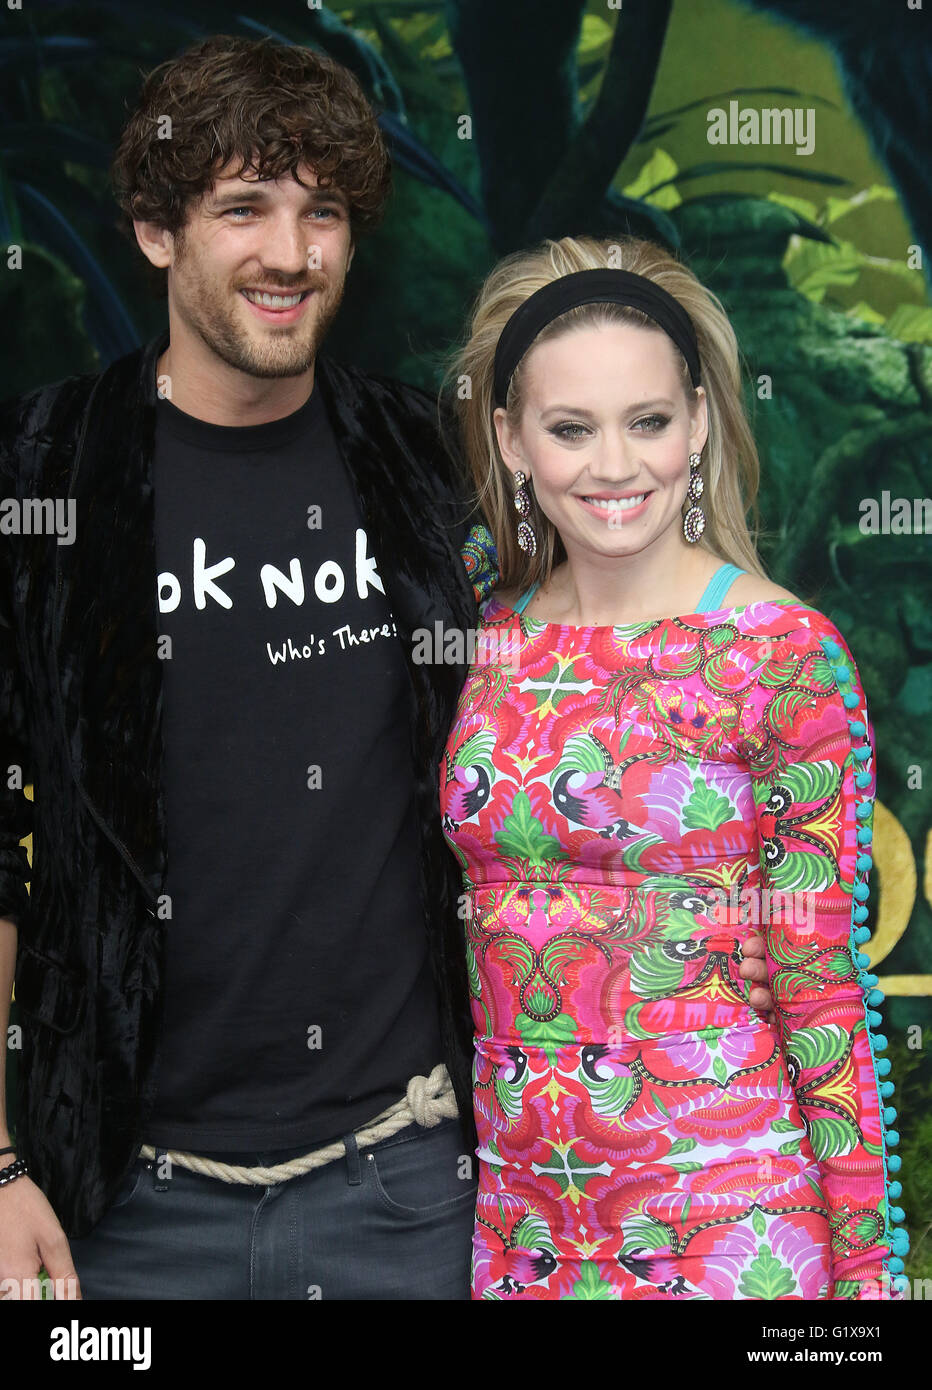 April 11, 2016 - Max Rogers and Kimberly Wyatt attending The Jungle Book European Premiere at BFI Imax in London, Stock Photo